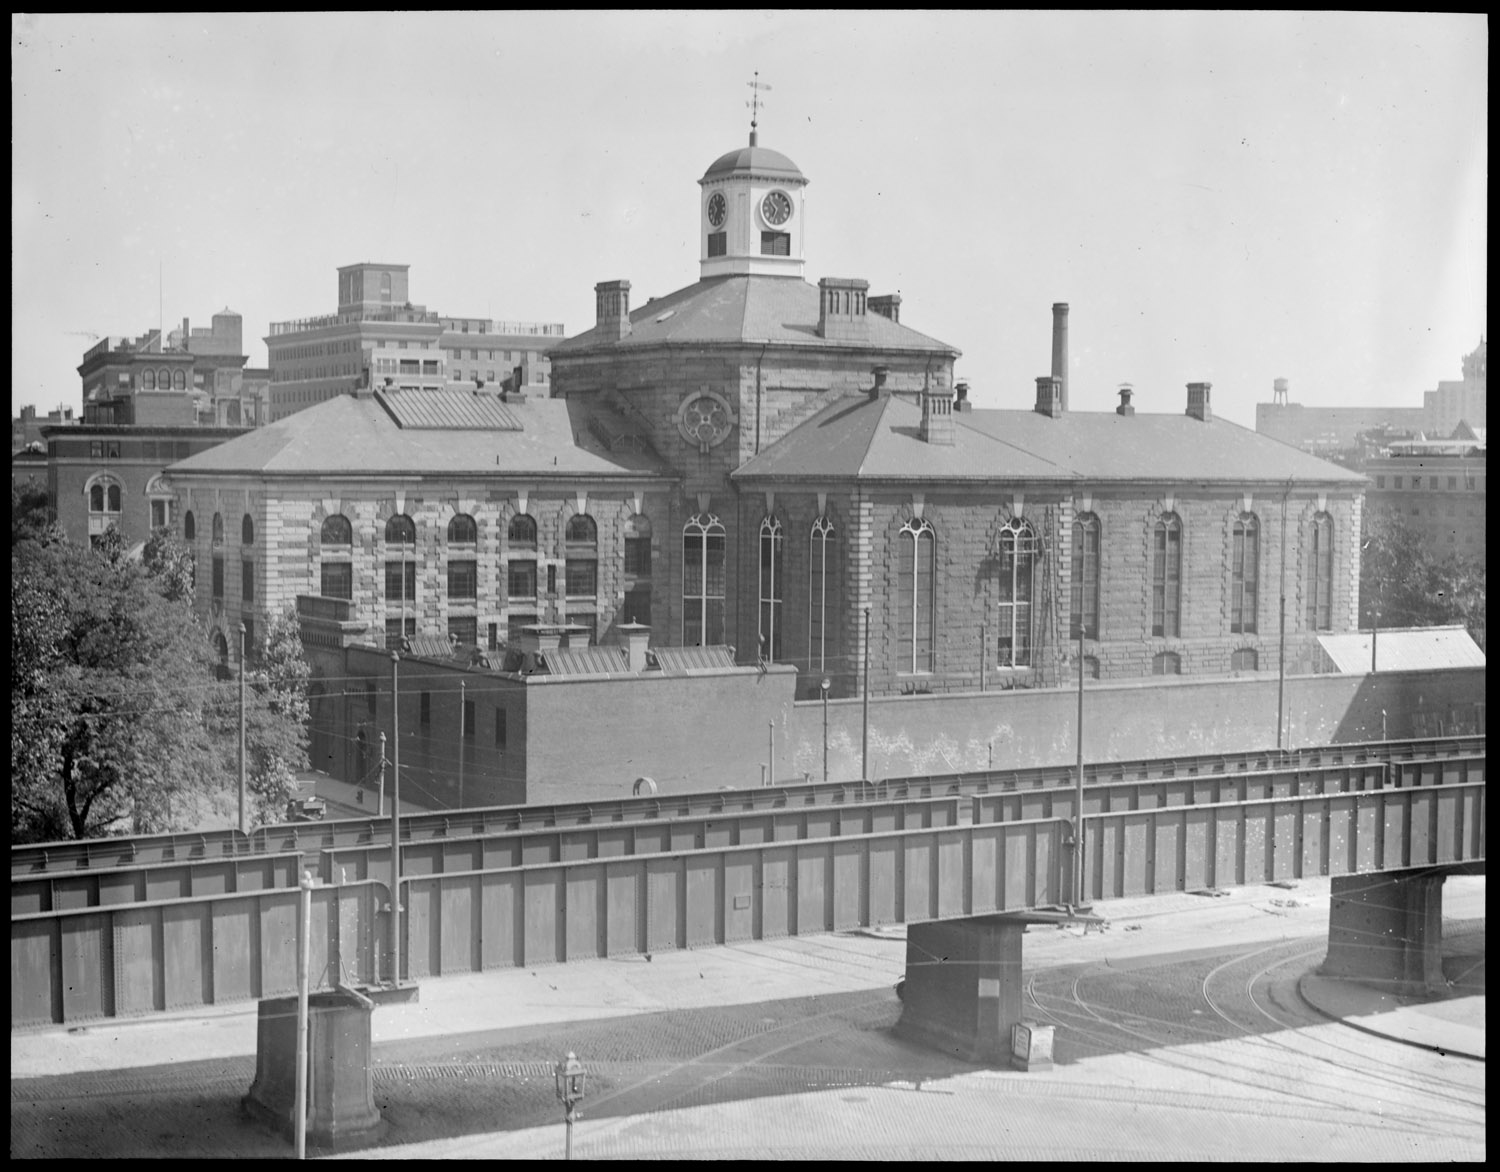 Boston Jail